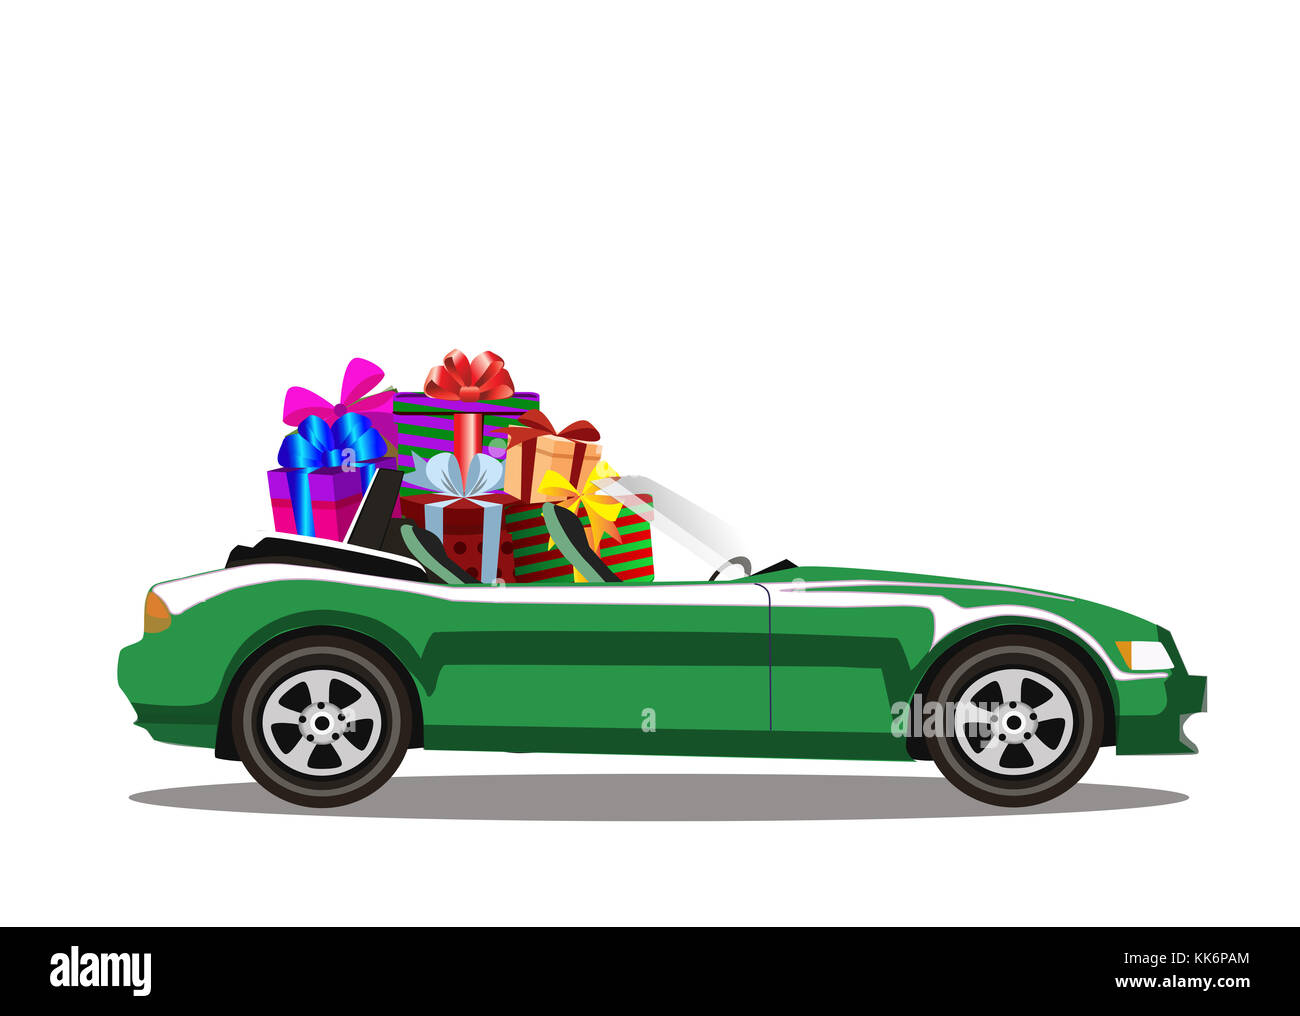 Green modern cartoon cabriolet car full of gift boxes isolated on white background. Sports car. Vector illustration. - Stock Image